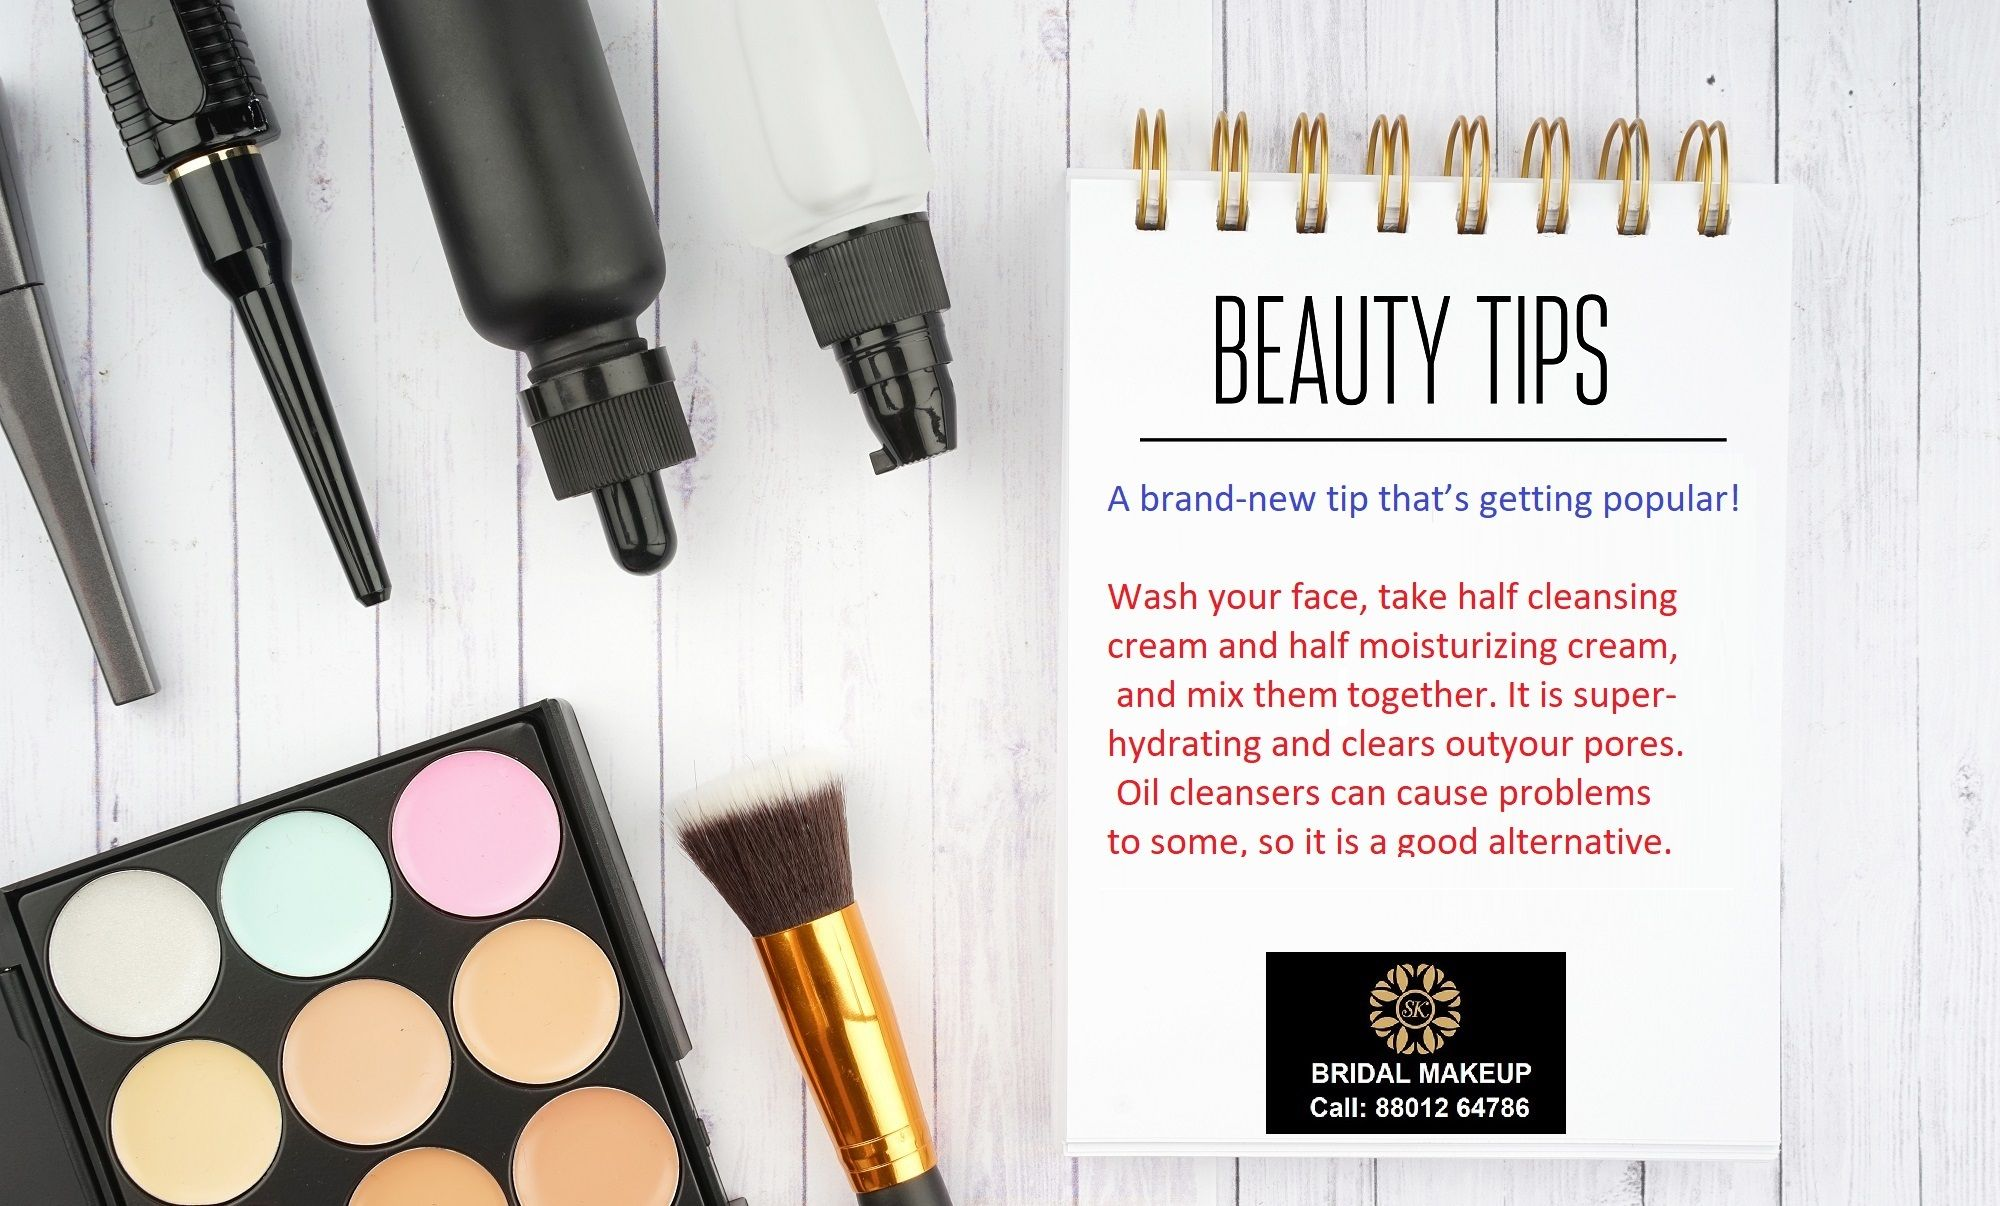 brand-new tip that's getting popular! 😍 #ariesmakeupstudio